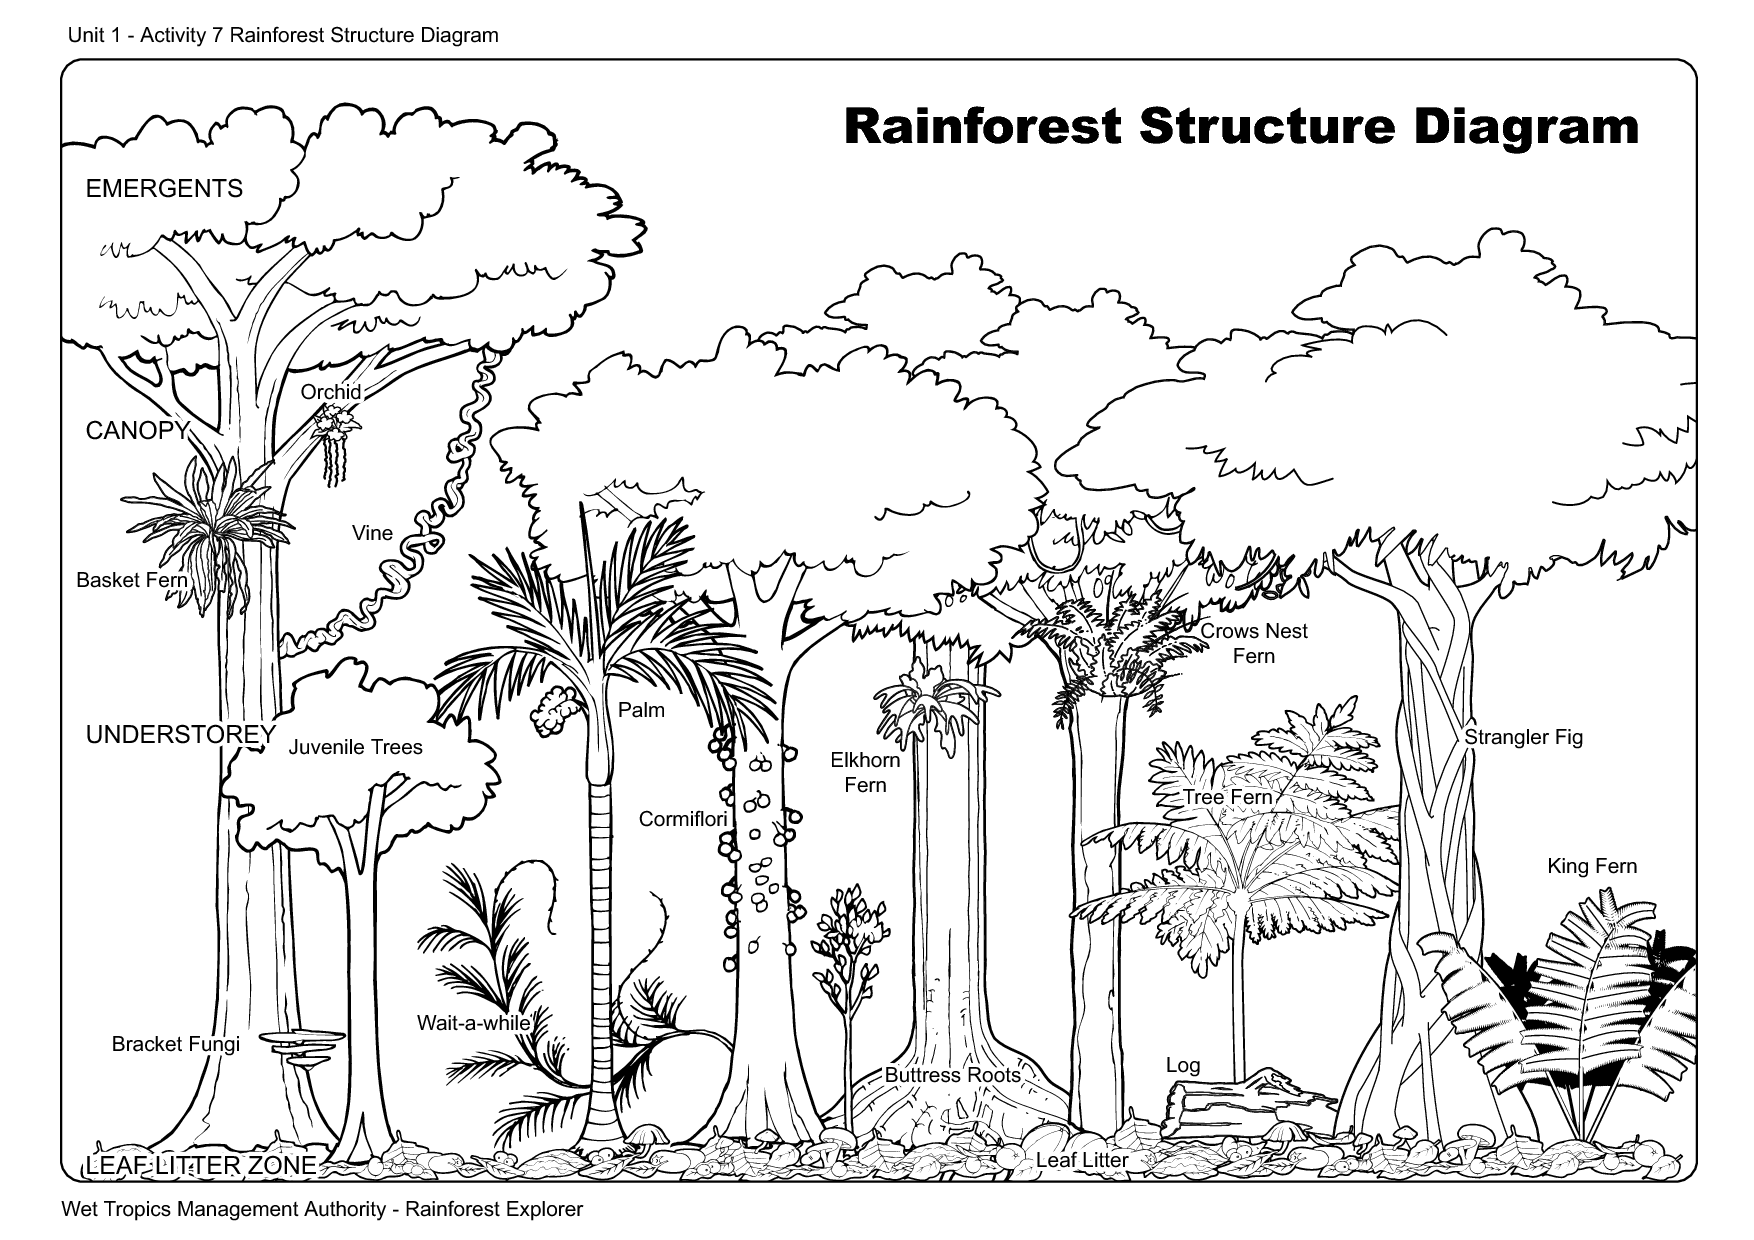 rainforest layer diagram rainforest ecosystem rainforest habitat rainforest project daintree rainforest rainforest [ 1754 x 1240 Pixel ]